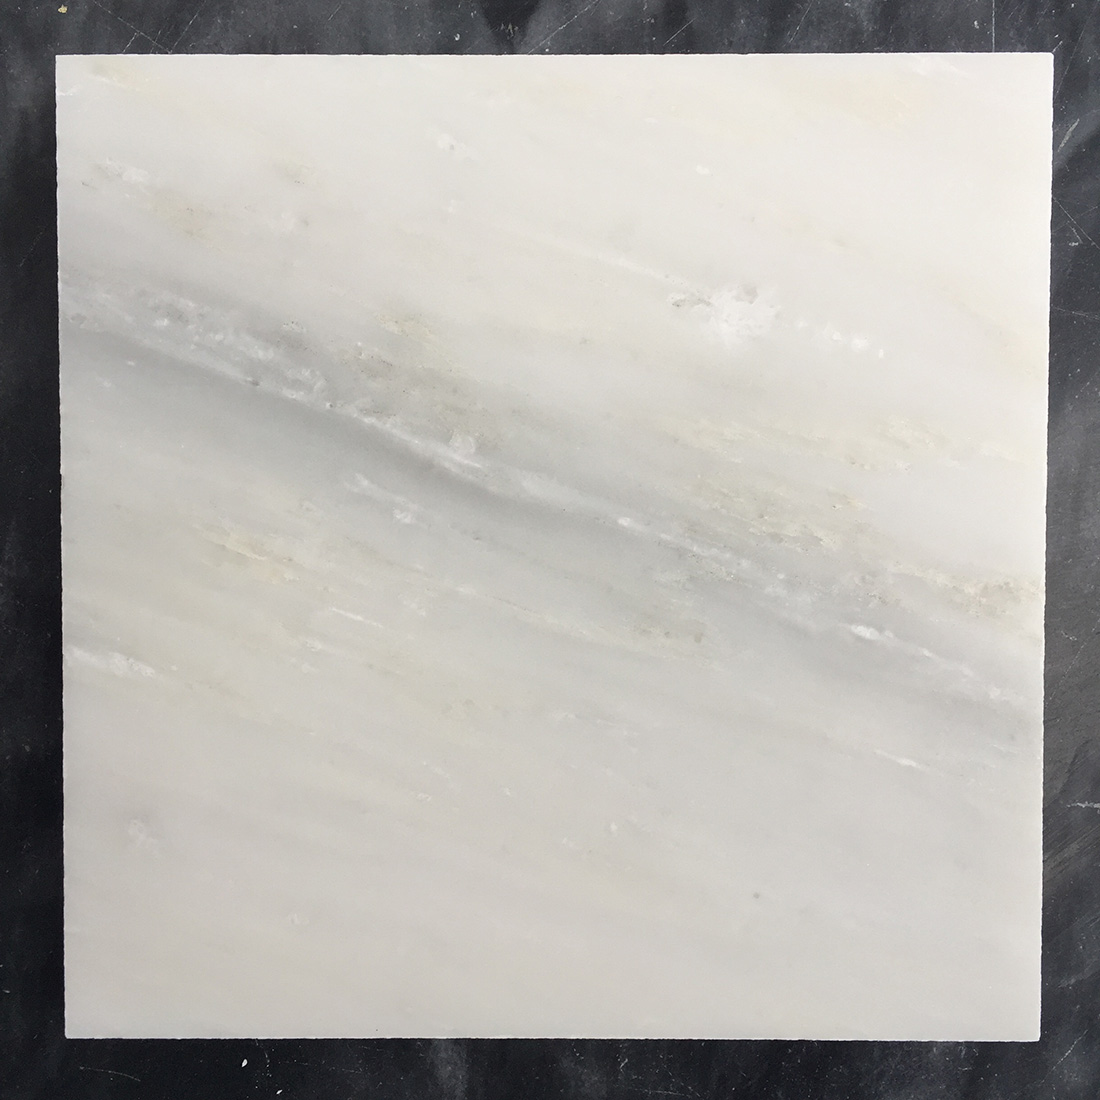 China White Marble Tiles New White Material from China